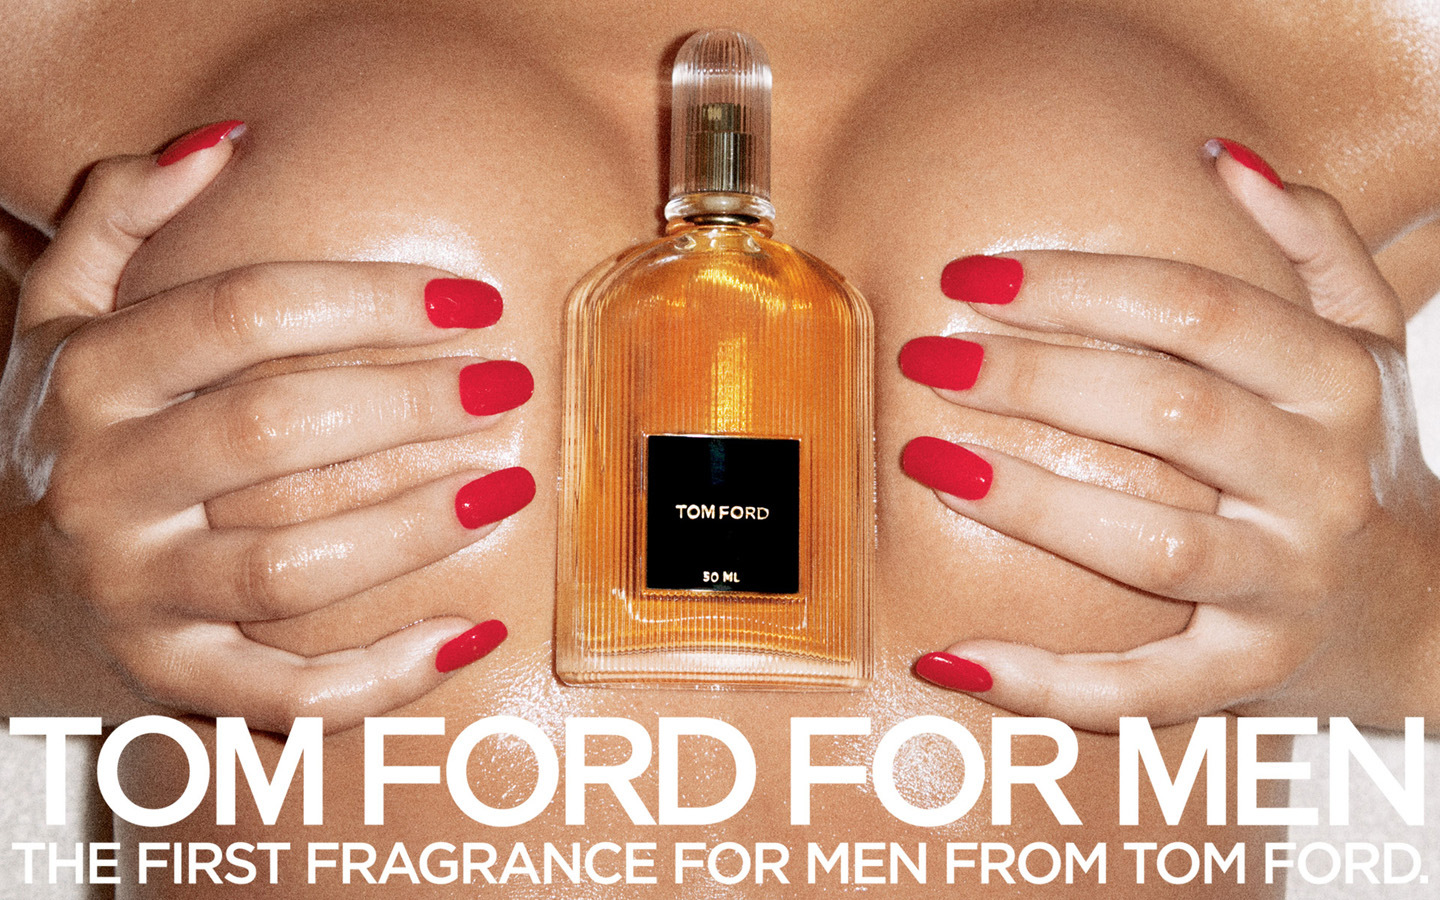 tom ford for men boobs ad